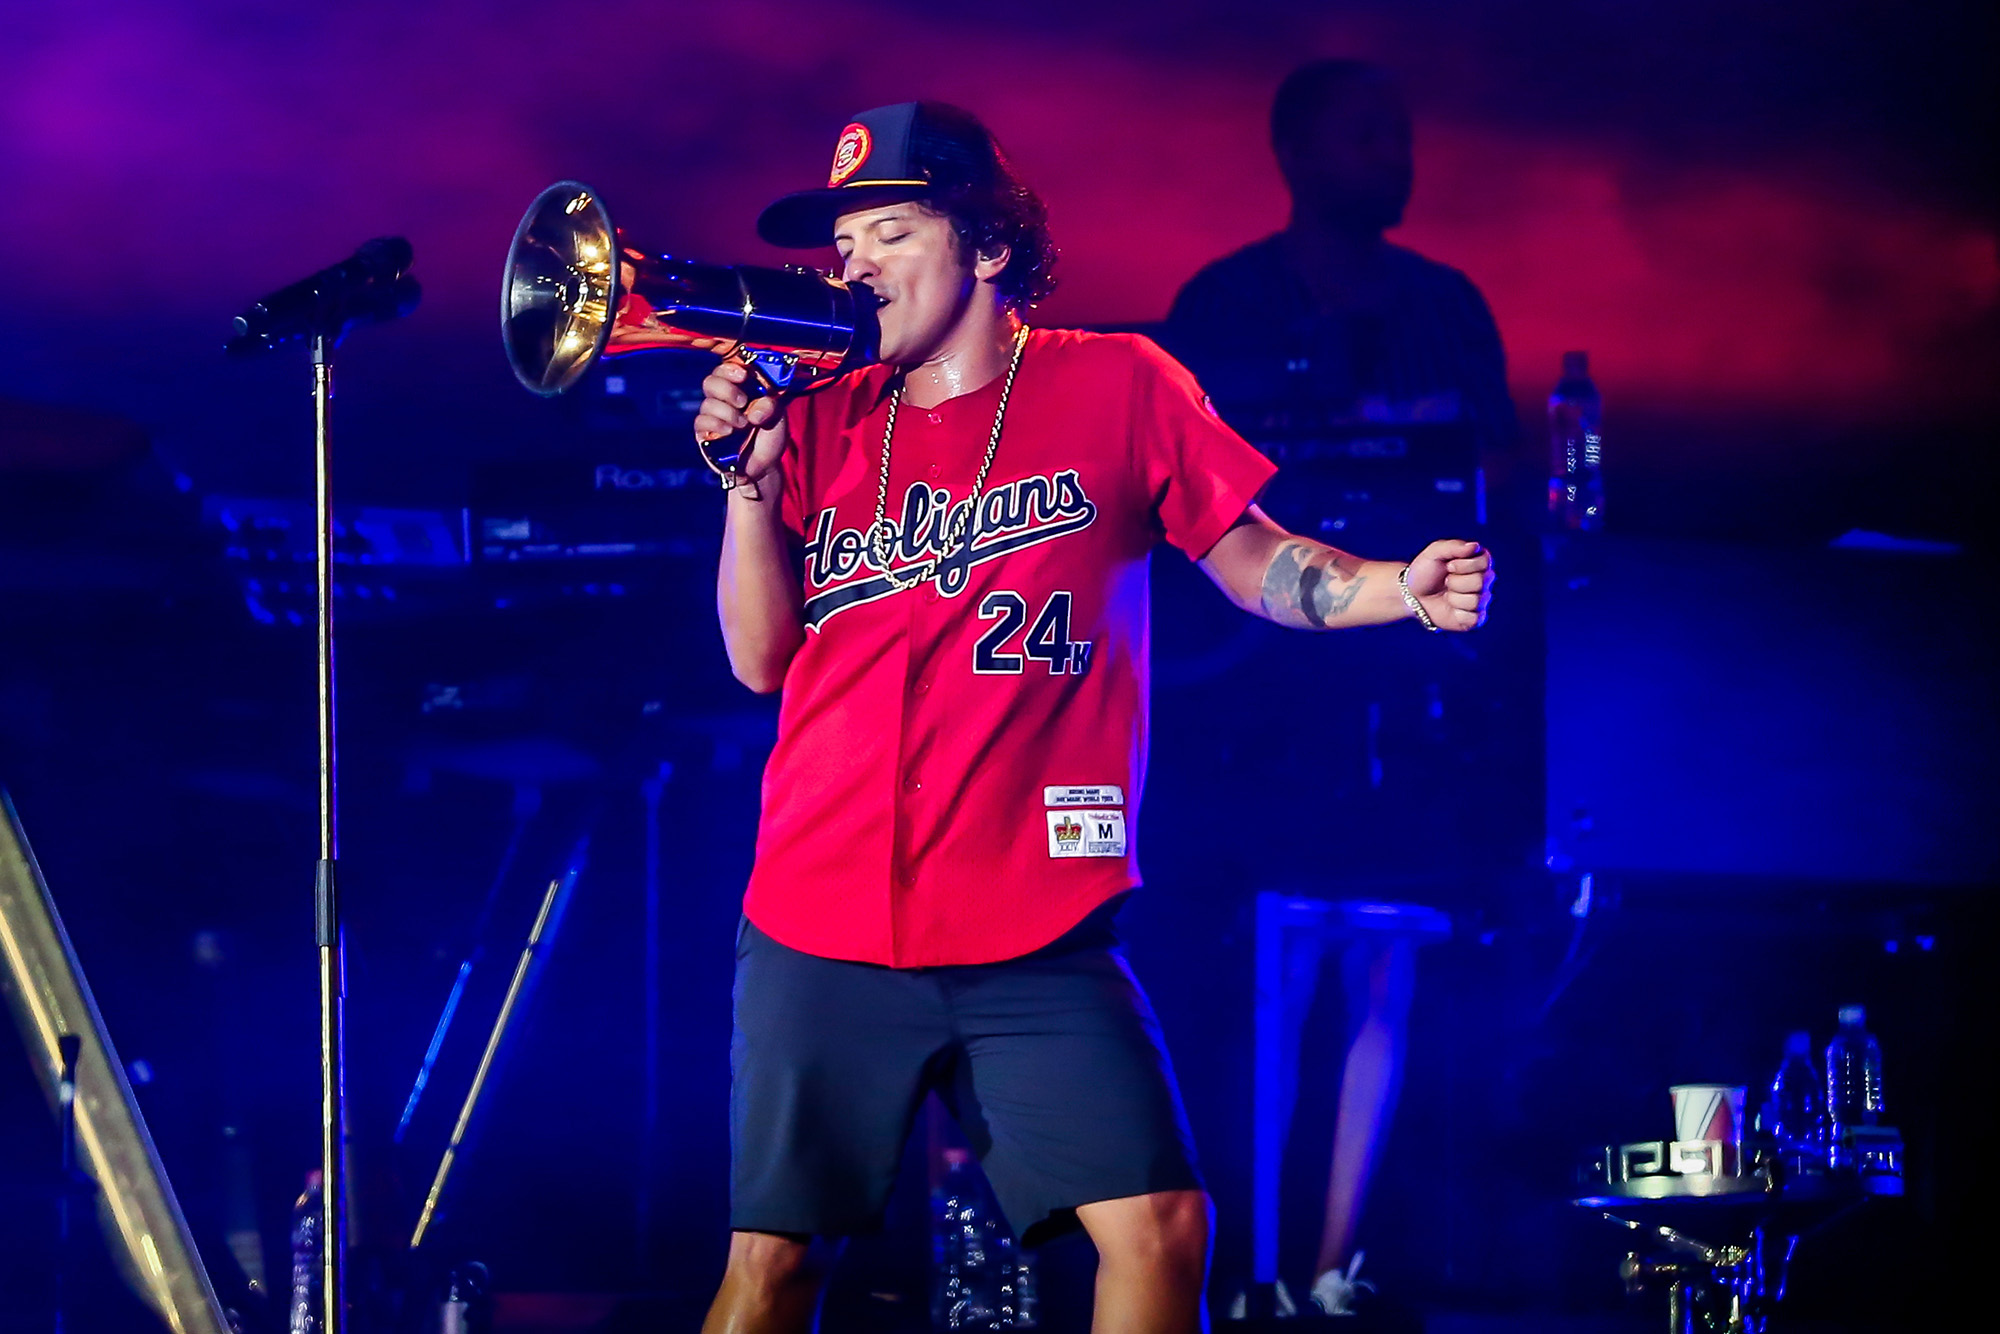 Bruno Mars rocks out at show in Sao Paulo, Brazil